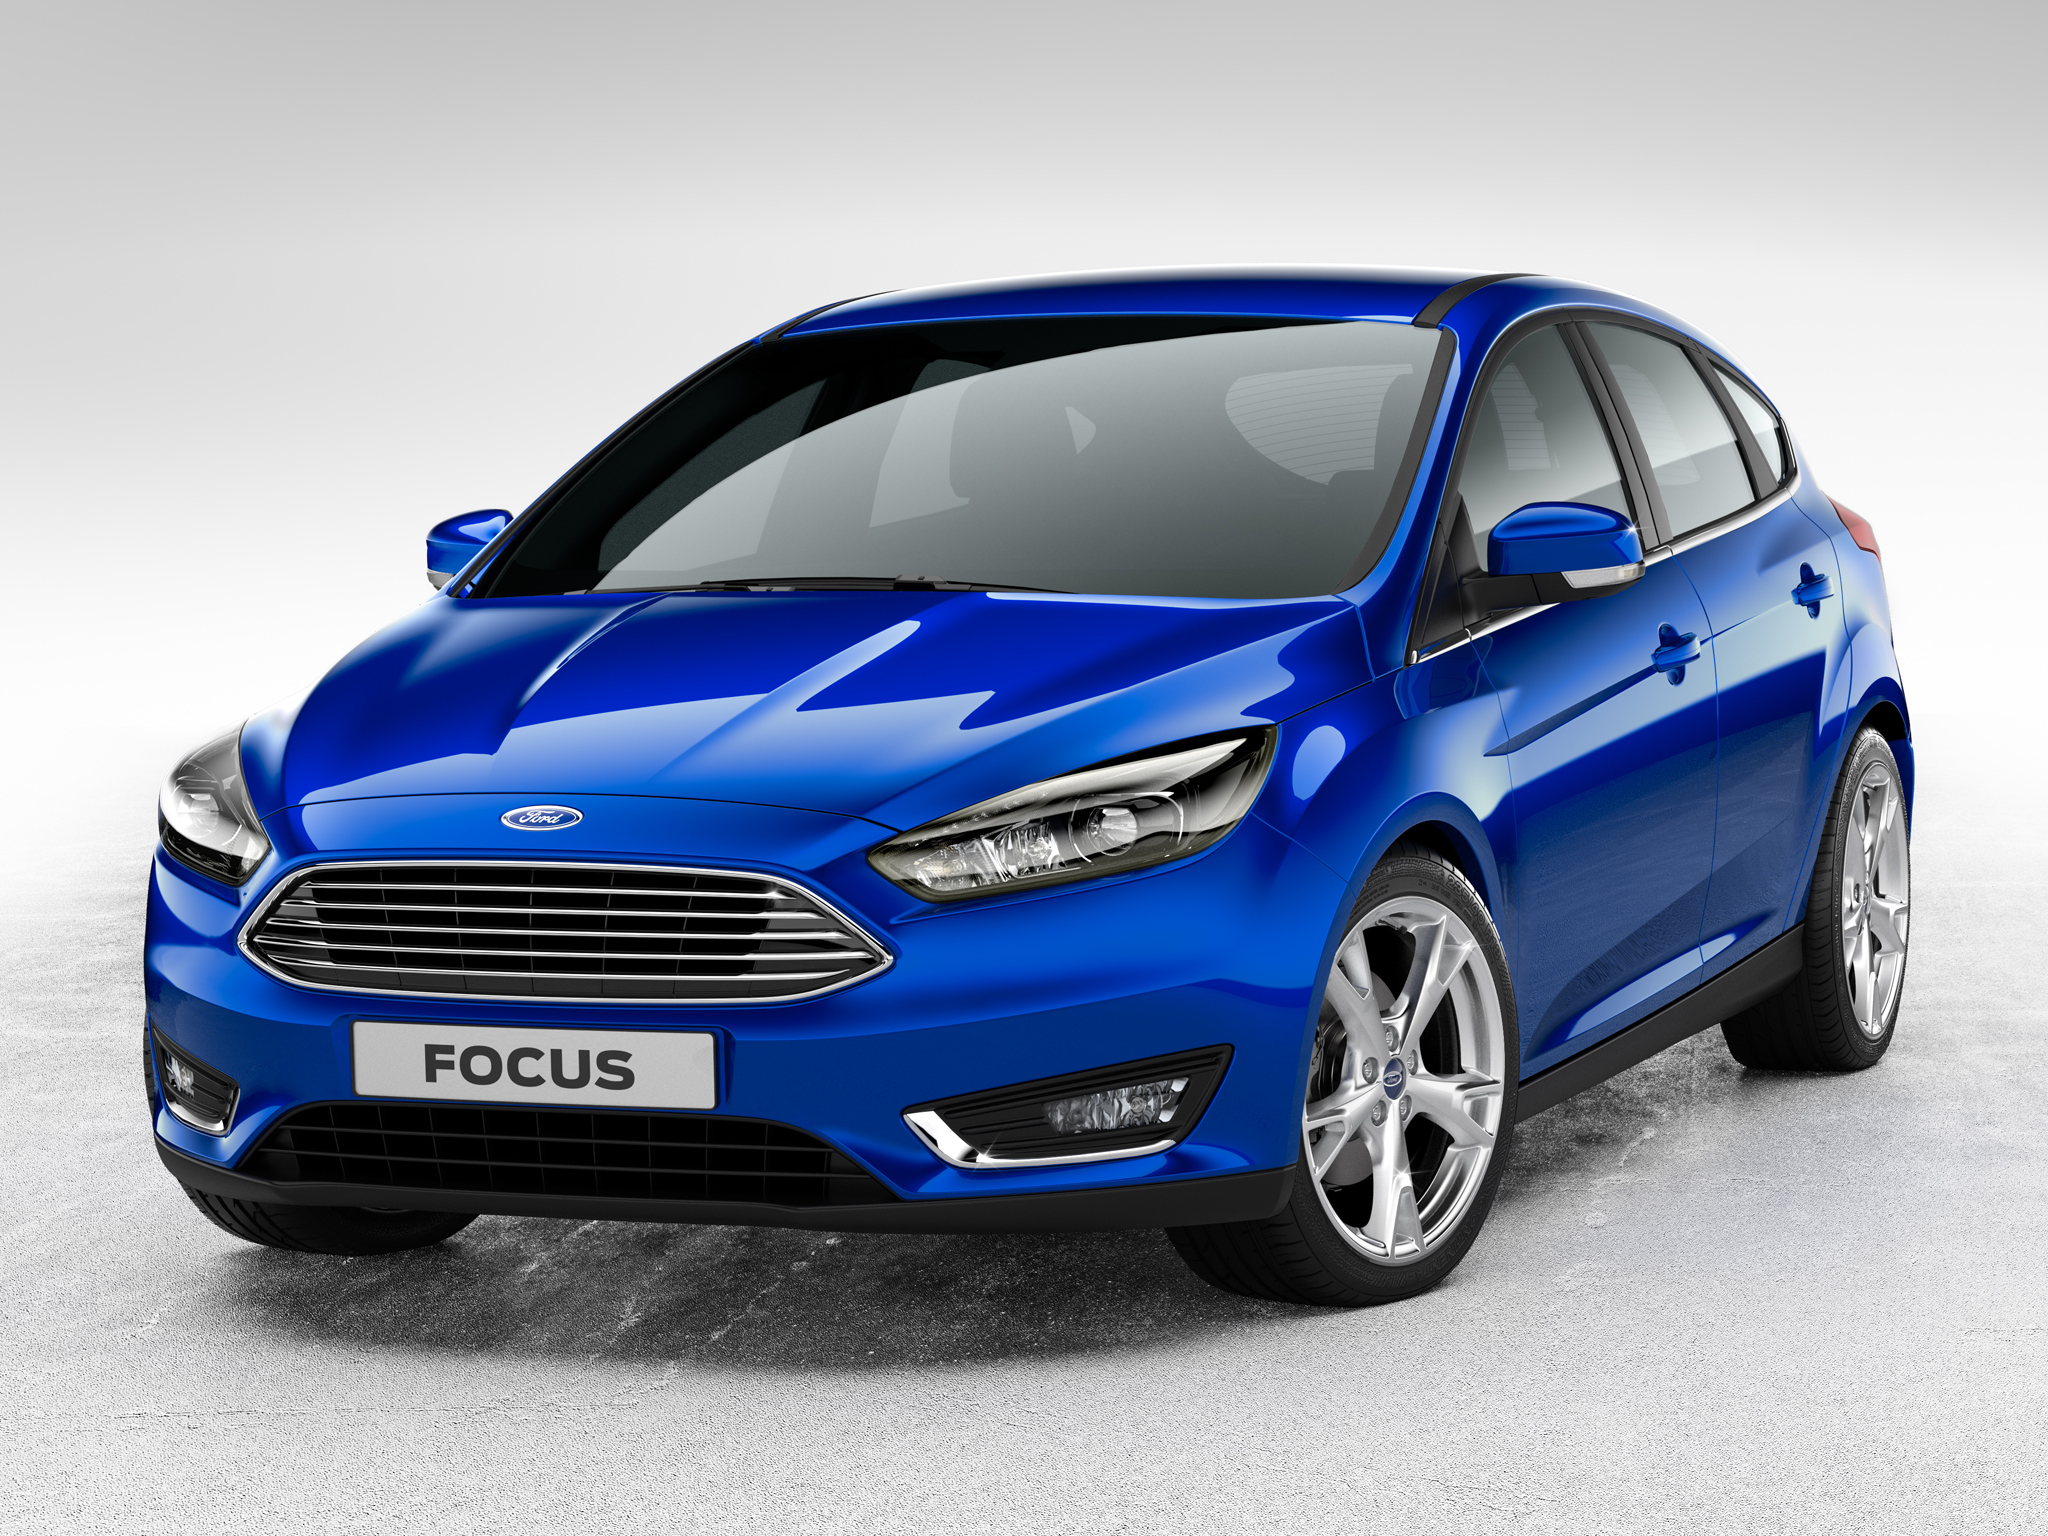 2014 ford focus facelift hatchback first official photos. Black Bedroom Furniture Sets. Home Design Ideas